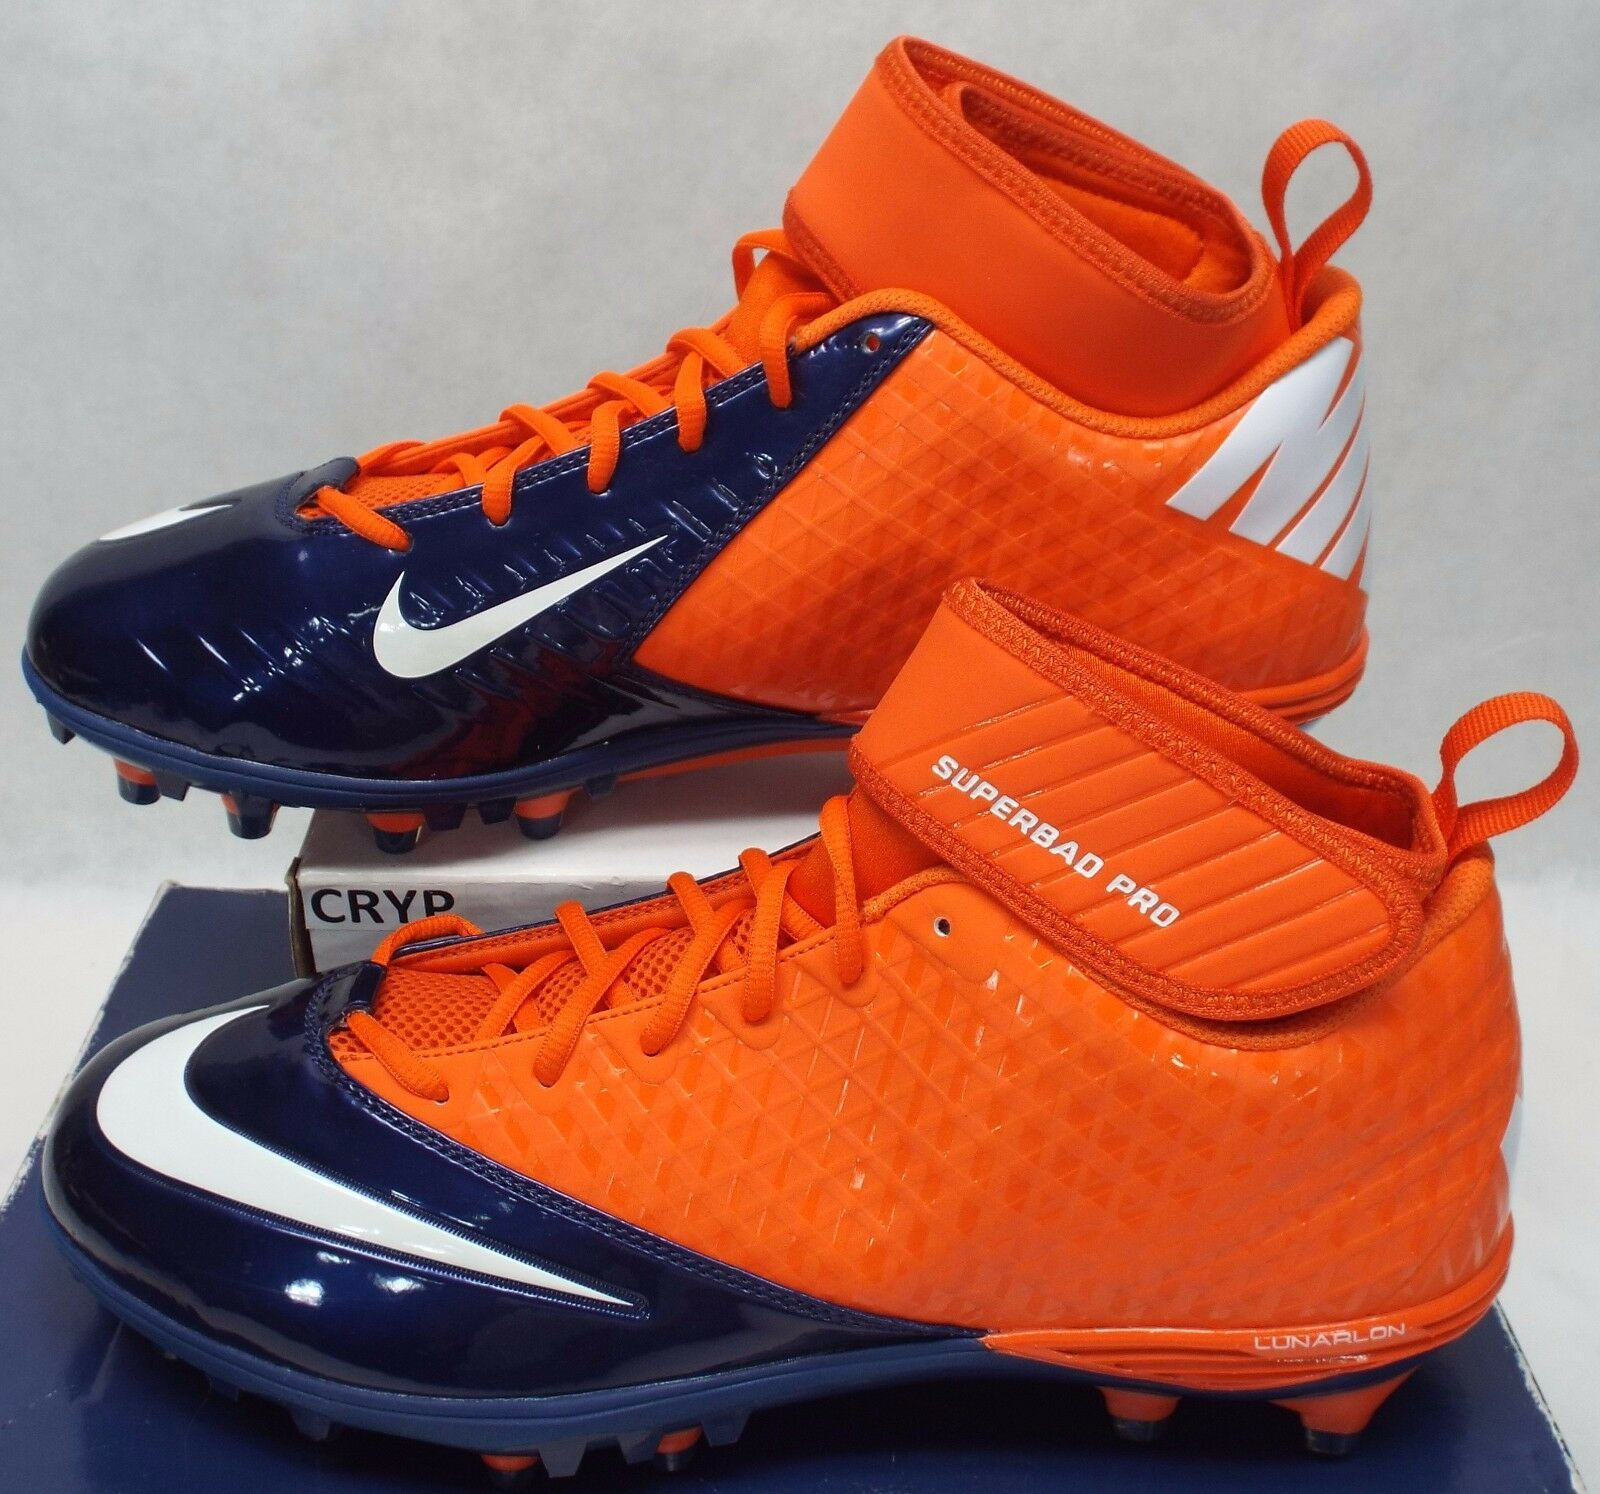 New Mens 13.5 13.5 13.5 NIKE Lunarlon Superbad Denver Broncos Cleats Shoes  105 534994-810 fb854d